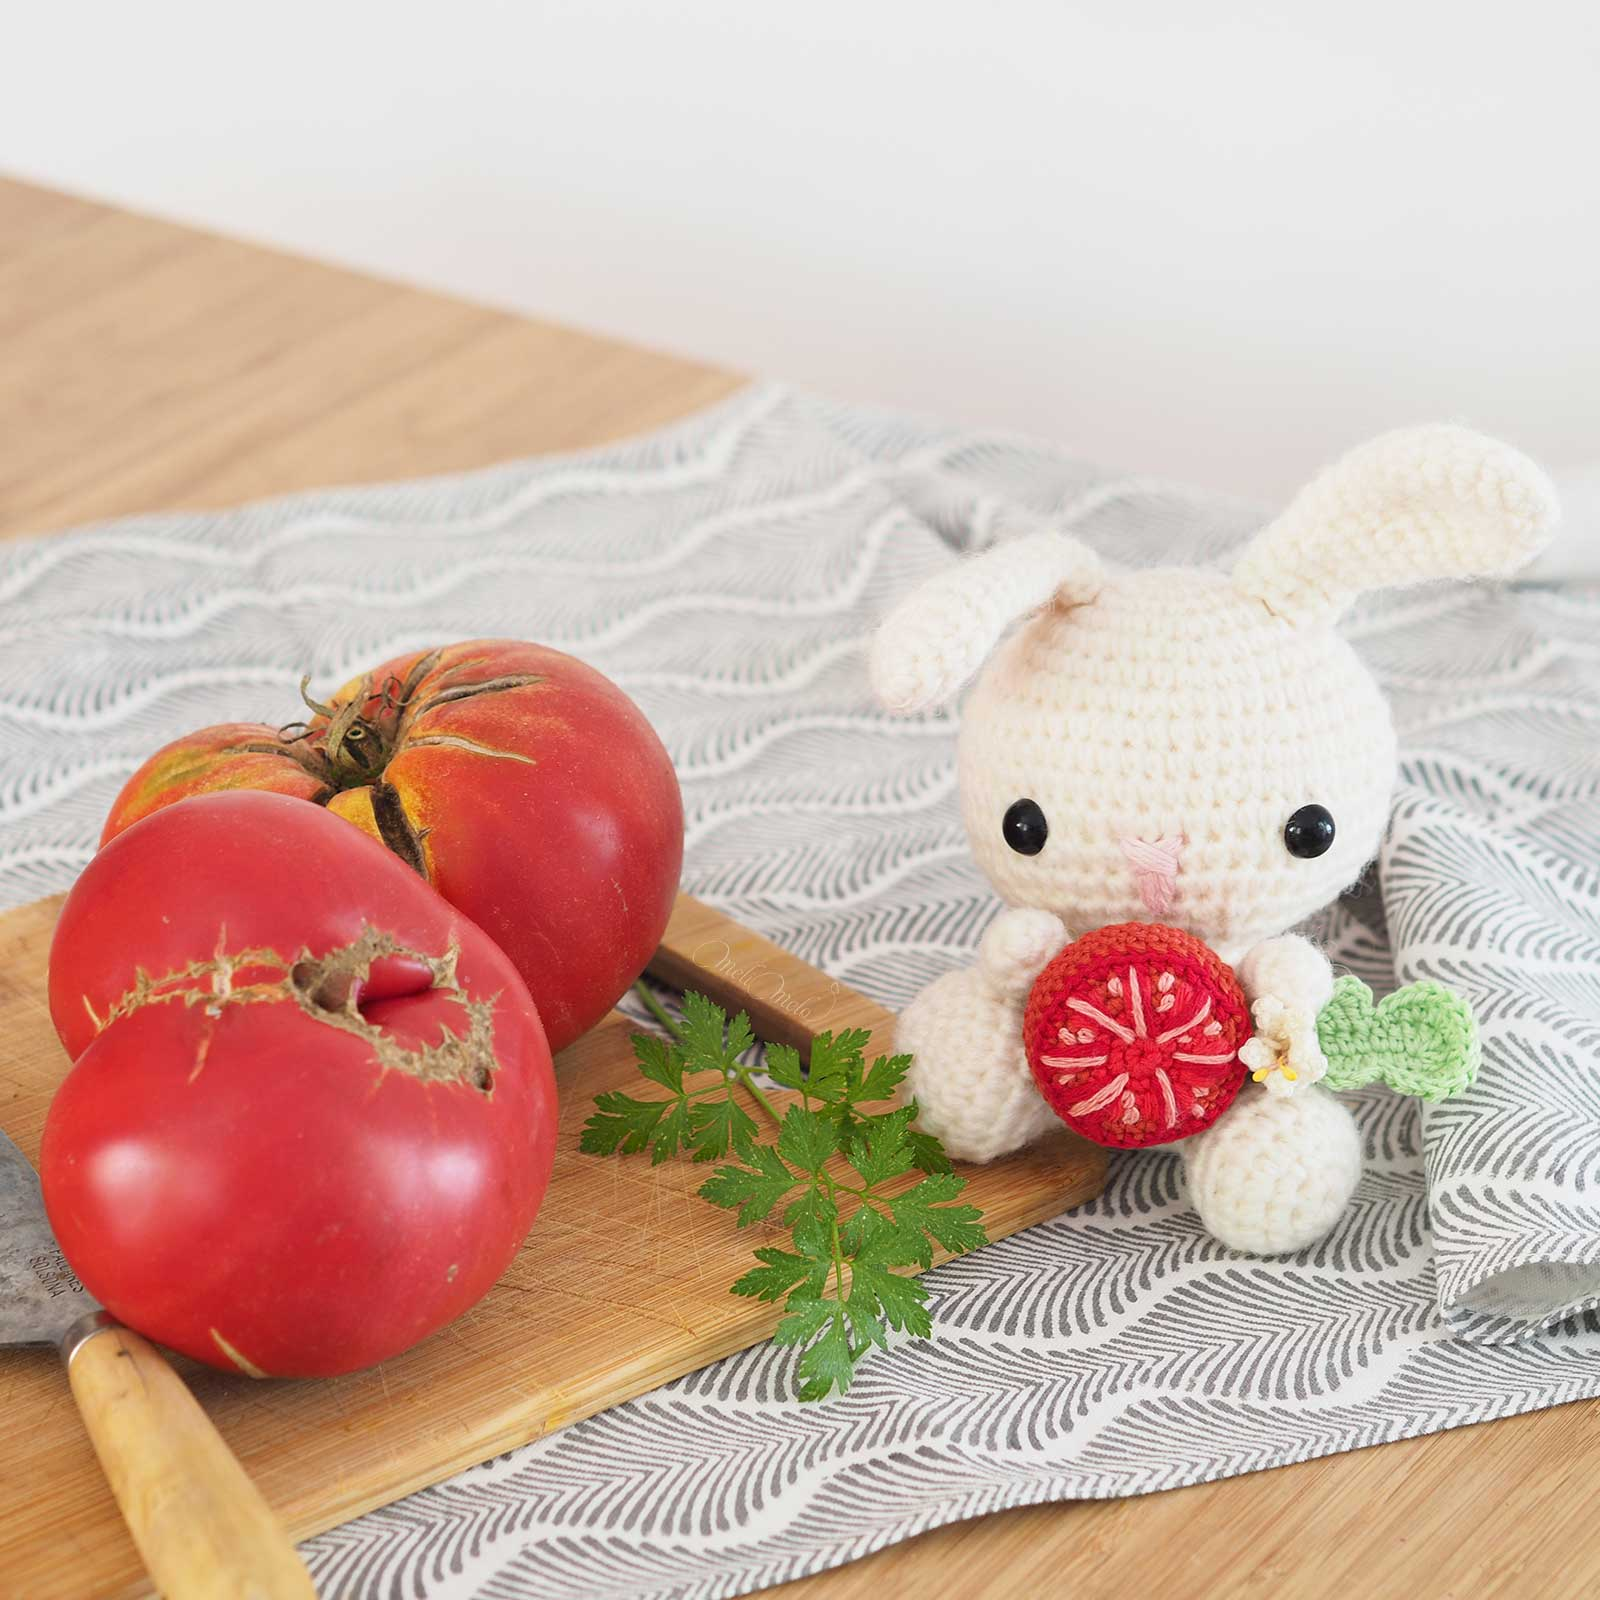 amigurumi-lapin-tomate-rose-potager-laboutiquedemelimelo